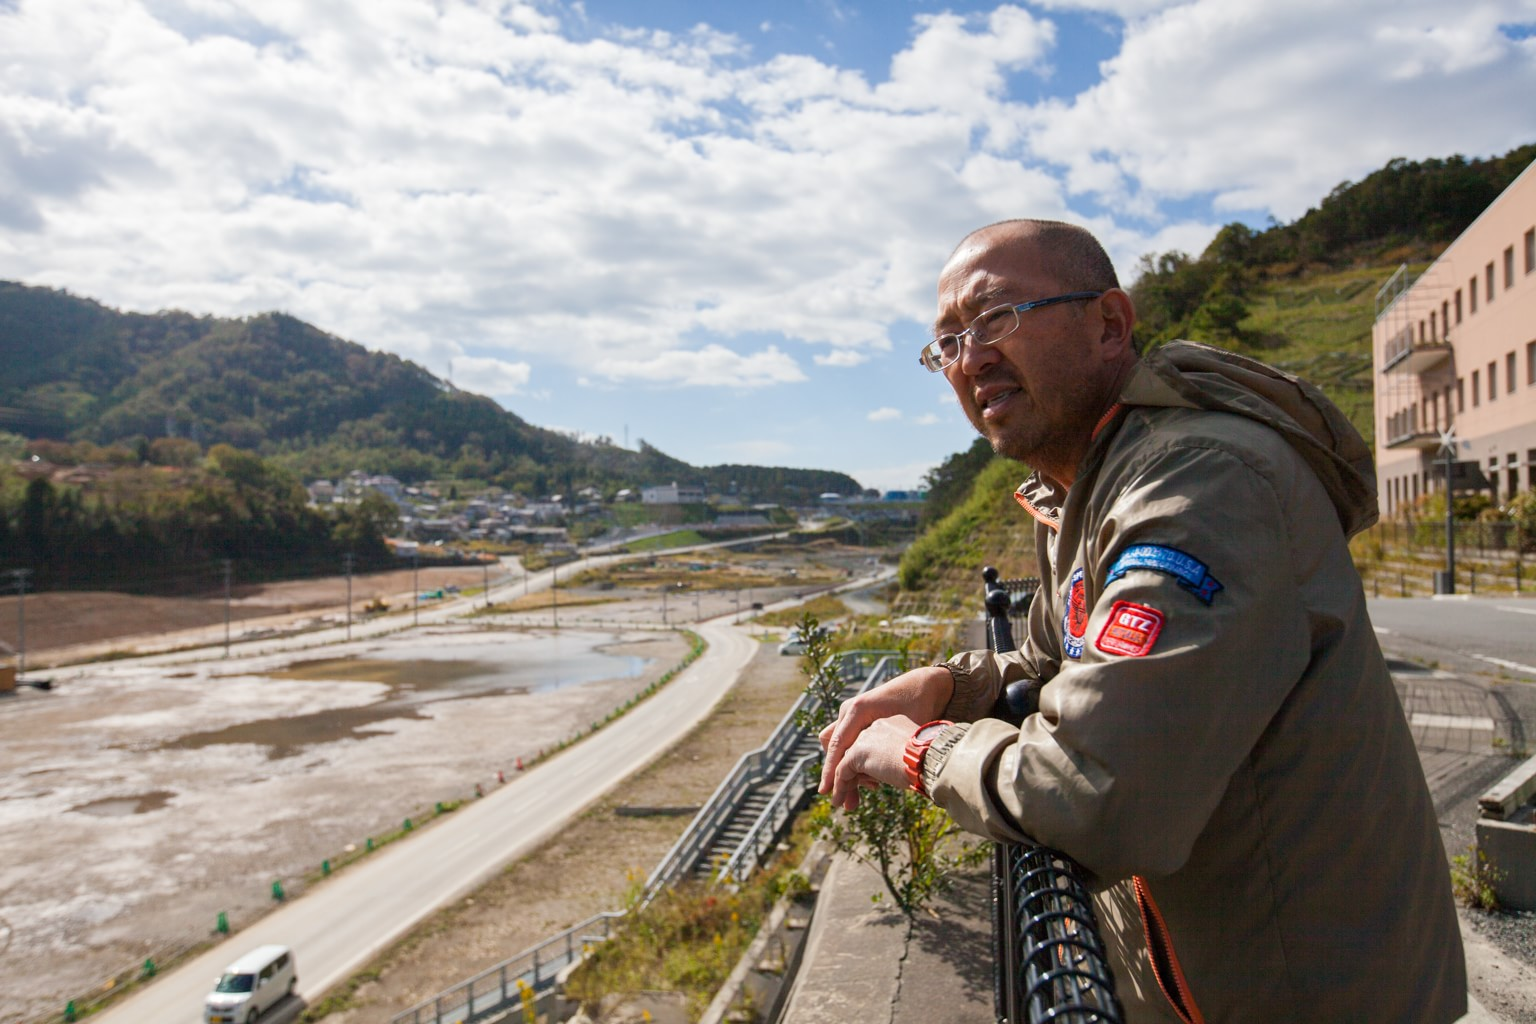 Fuller Seminary alum Eric Takamoto surveying the devestation in Japan